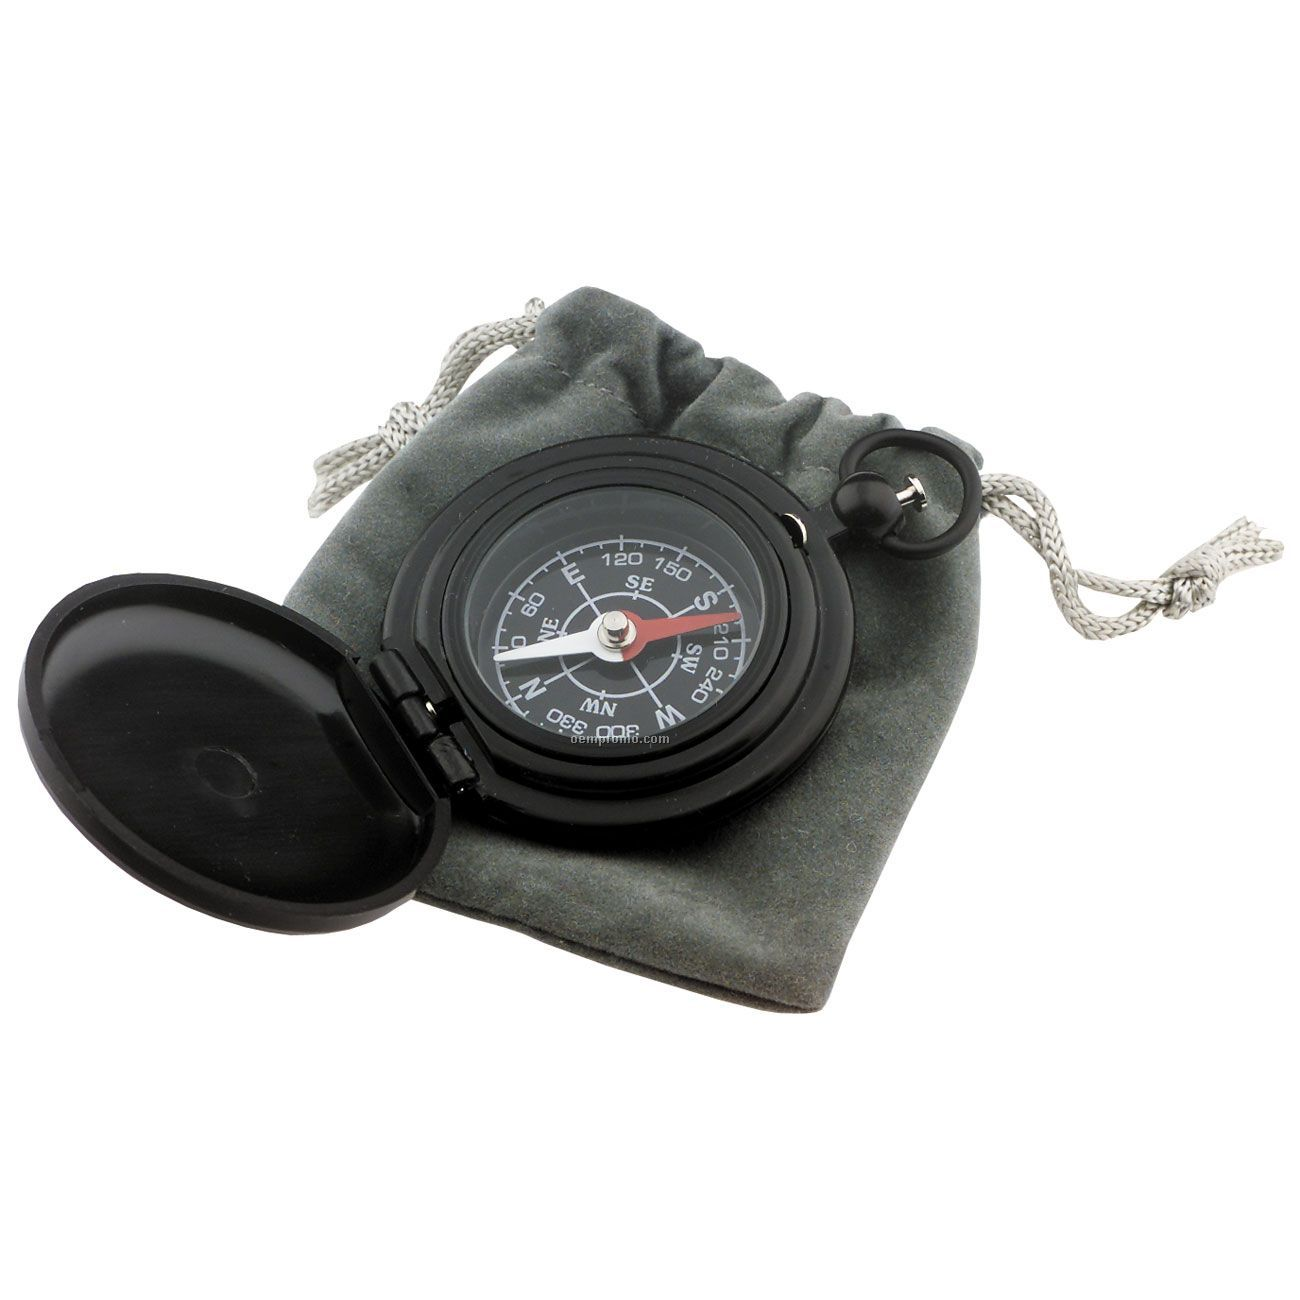 Deluxe Pocket Compass W/ Drawstring Pouch